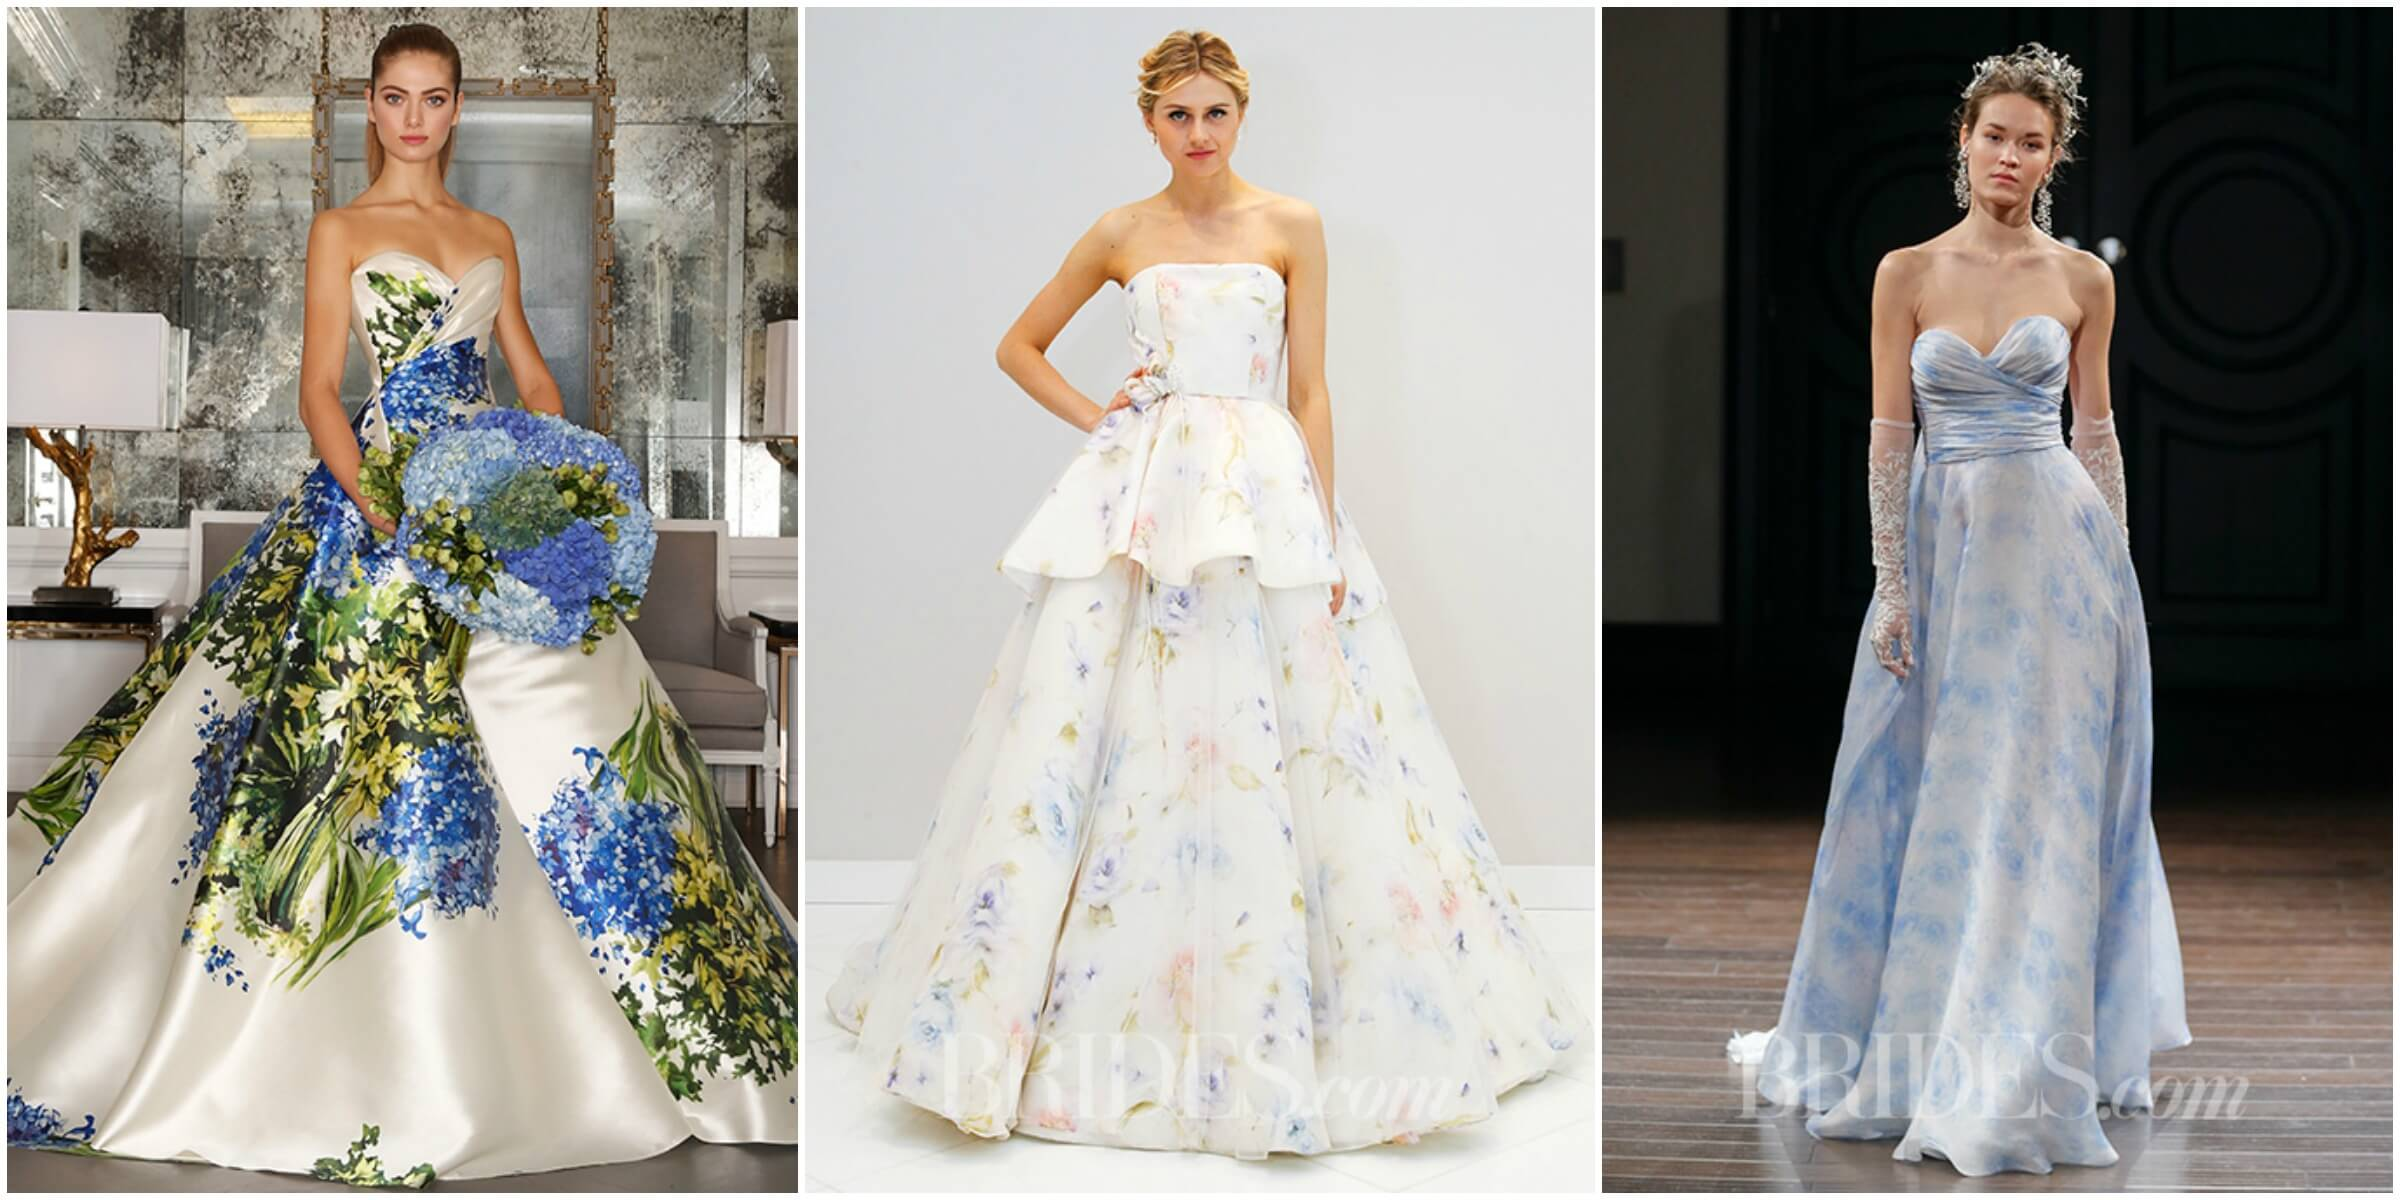 Pin It These Colored Wedding Dresses Look So Much Better Than Clic Whites